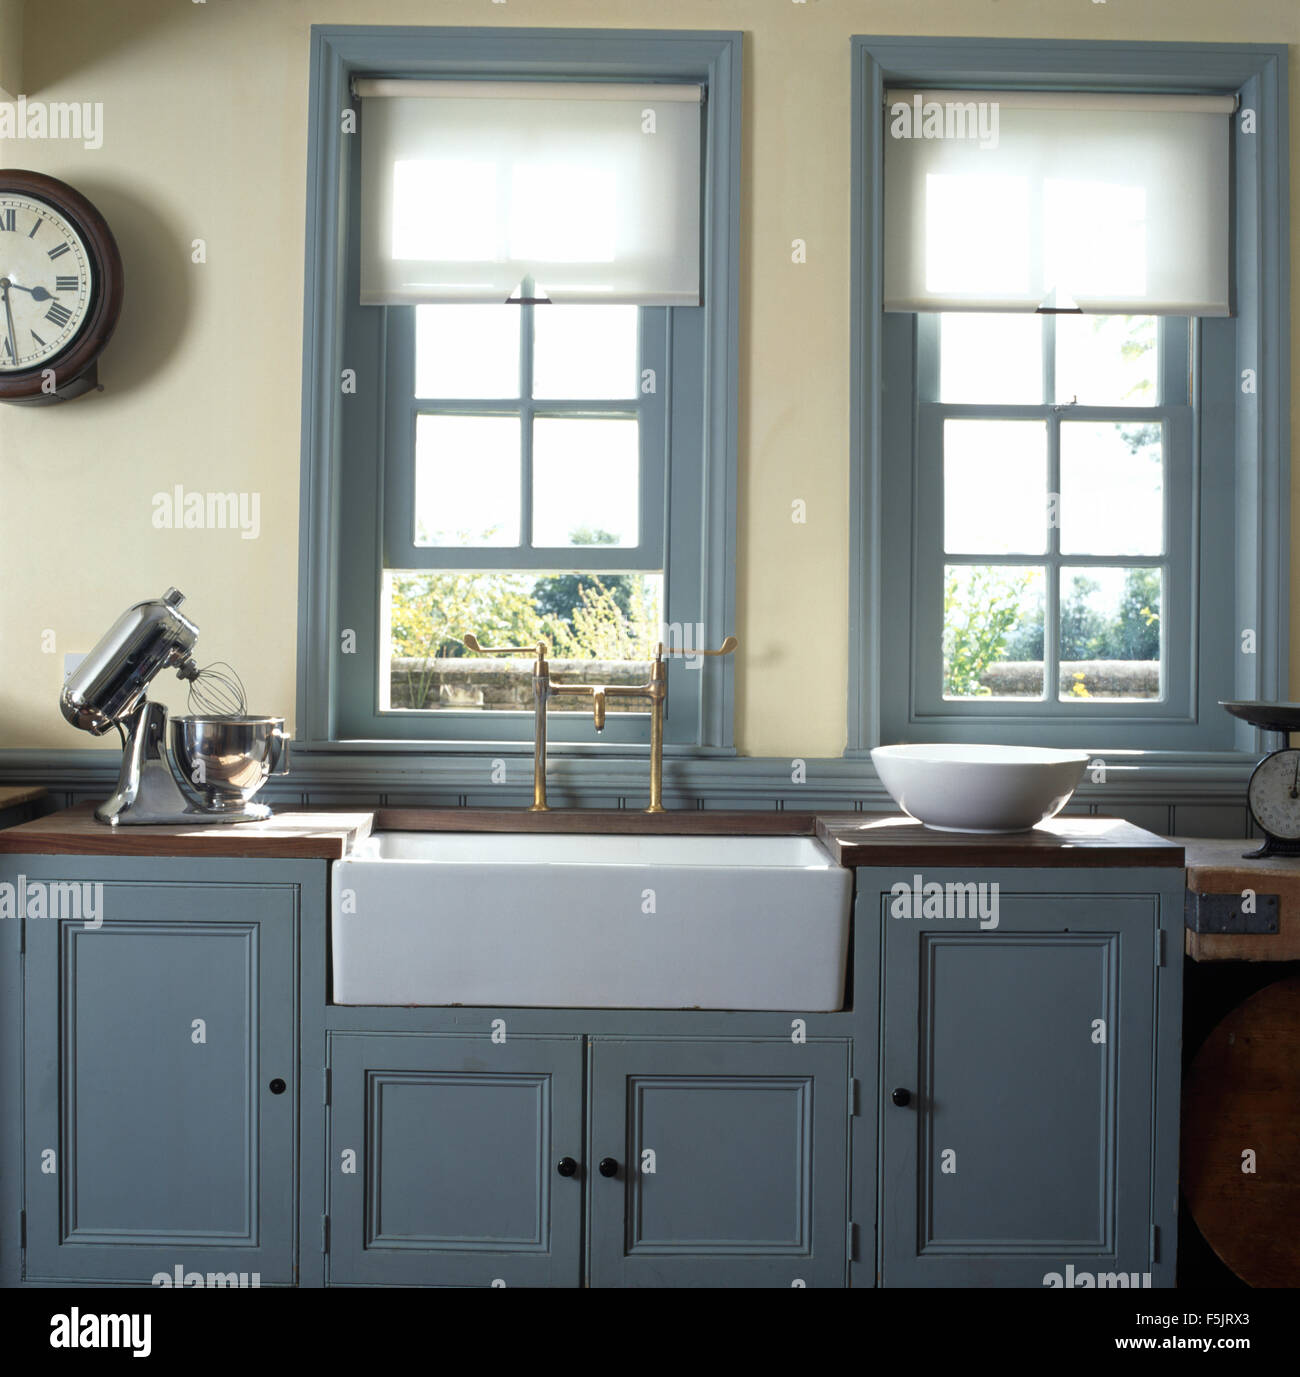 Bathroom Window Above Sink white blinds on windows above belfast sink in kitchen with pale